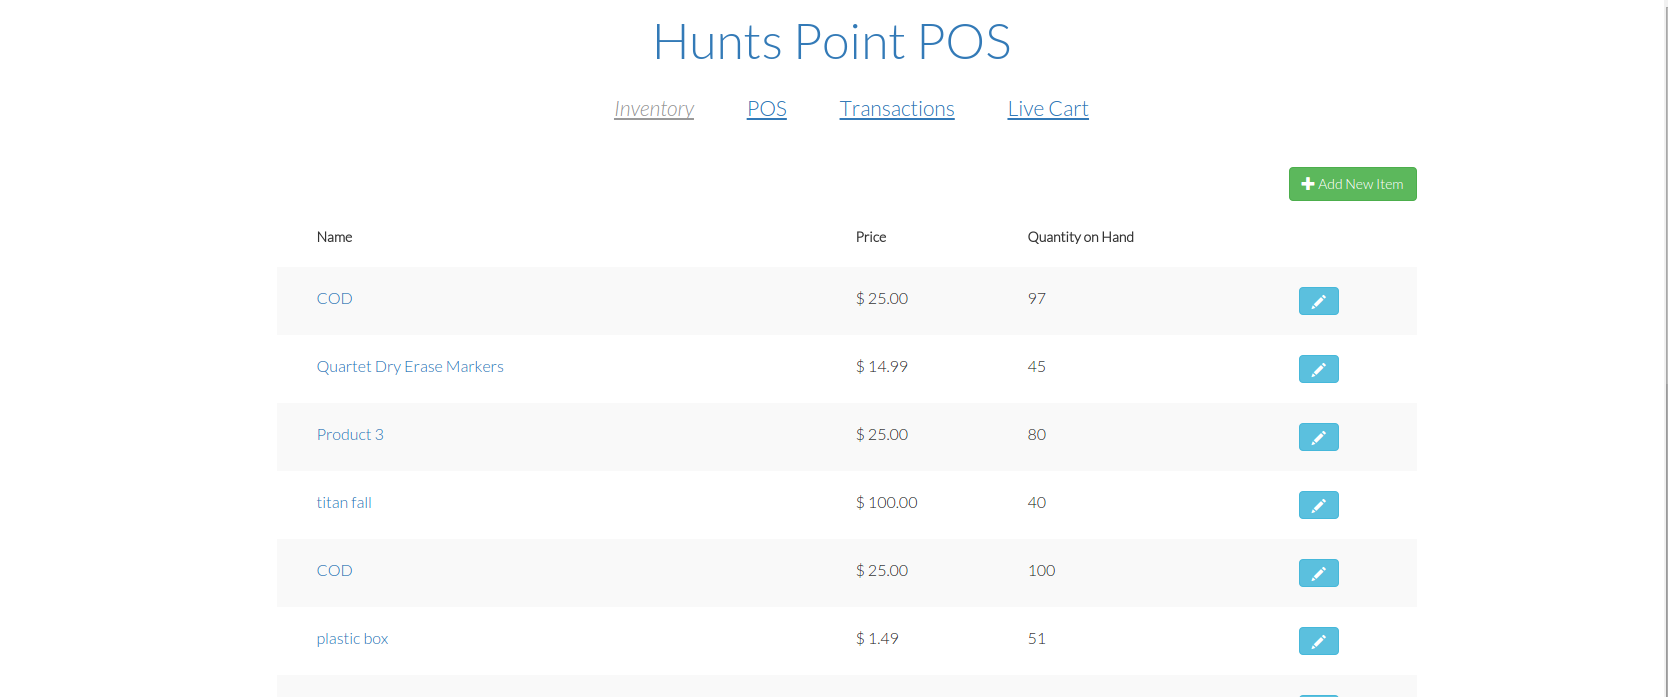 GitHub - afaqurk/hunts-point-pos: A real-time, simple web